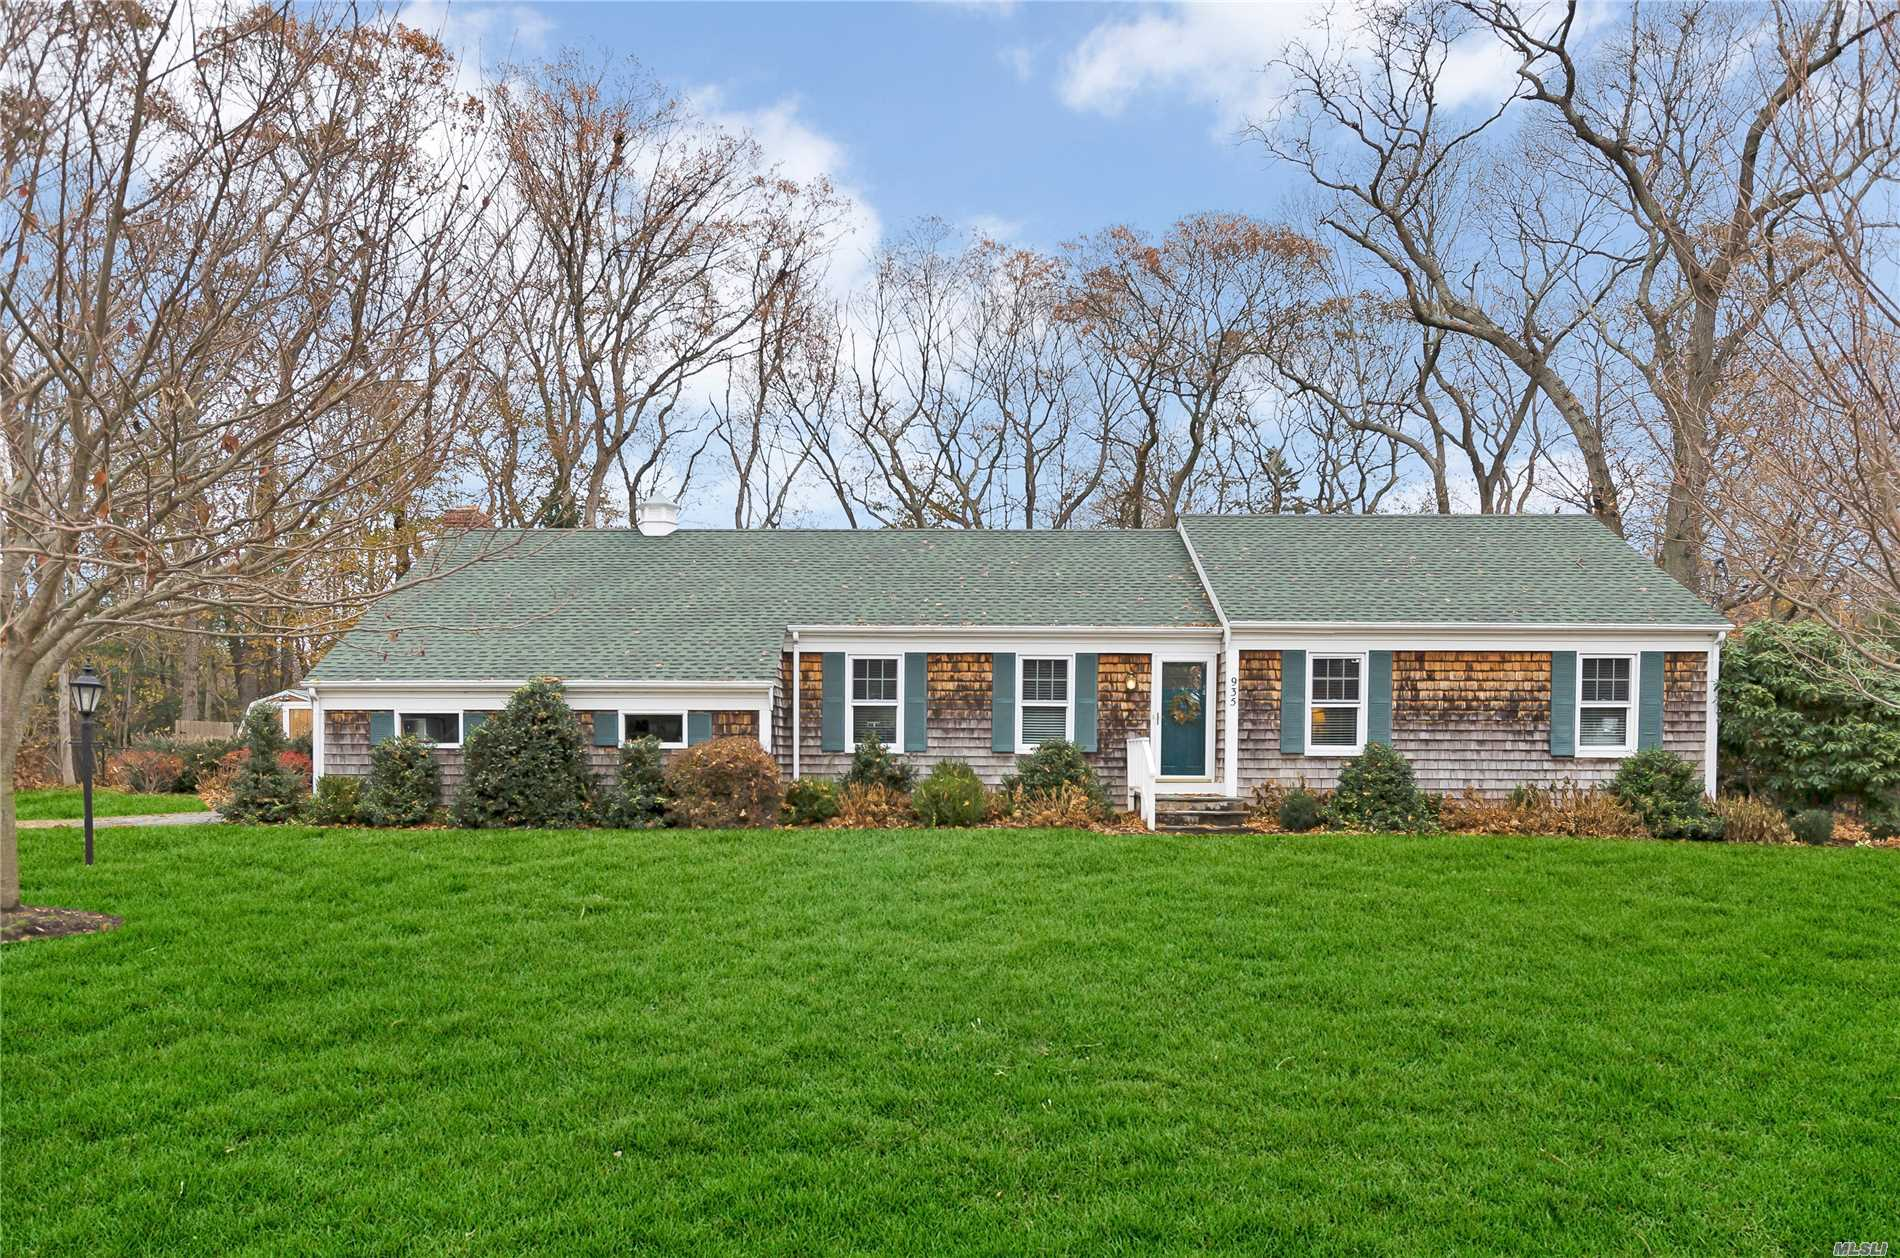 Enjoy This Updated 3 Bedroom, 3 Bath Ranch With Pool In The Desirable Southwoods Waterfront Community With Water Access And Community Park. Features Updated Kitchen, Great Room With Fireplace, New Windows And 20 X 40 In-Ground Pool For Your Summer Relaxation. Close To Goose Creek Bay Beach And Southold Village.